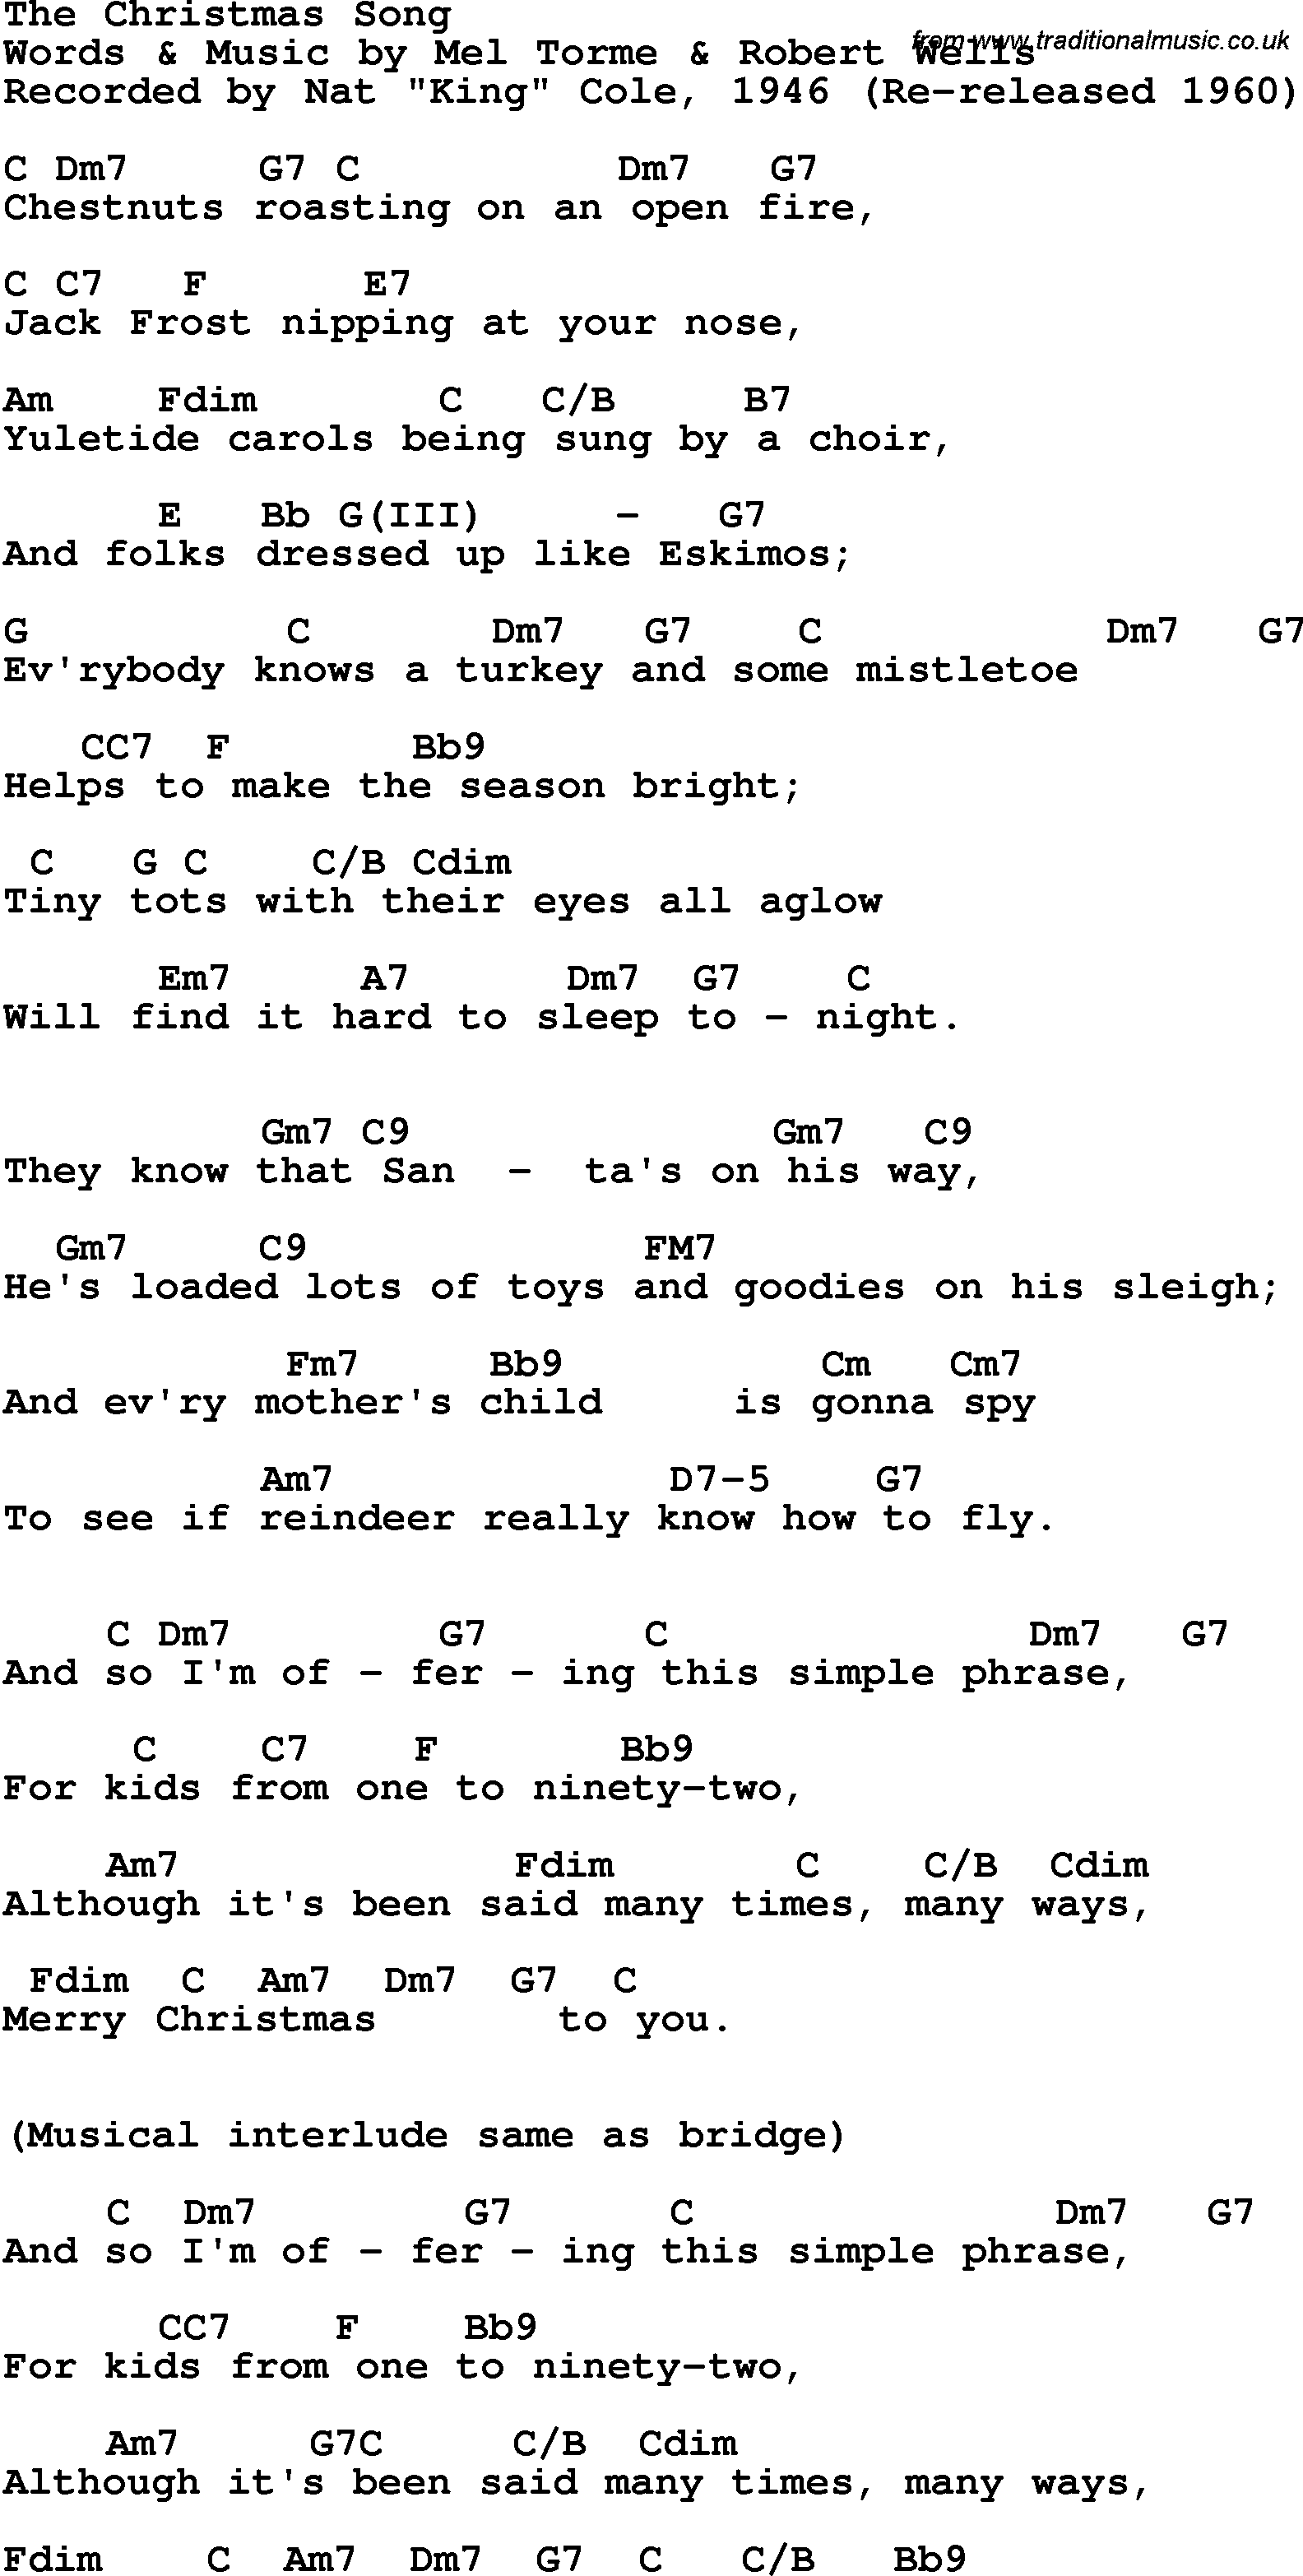 song lyrics with guitar chords for christmas song the nat king cole 1946